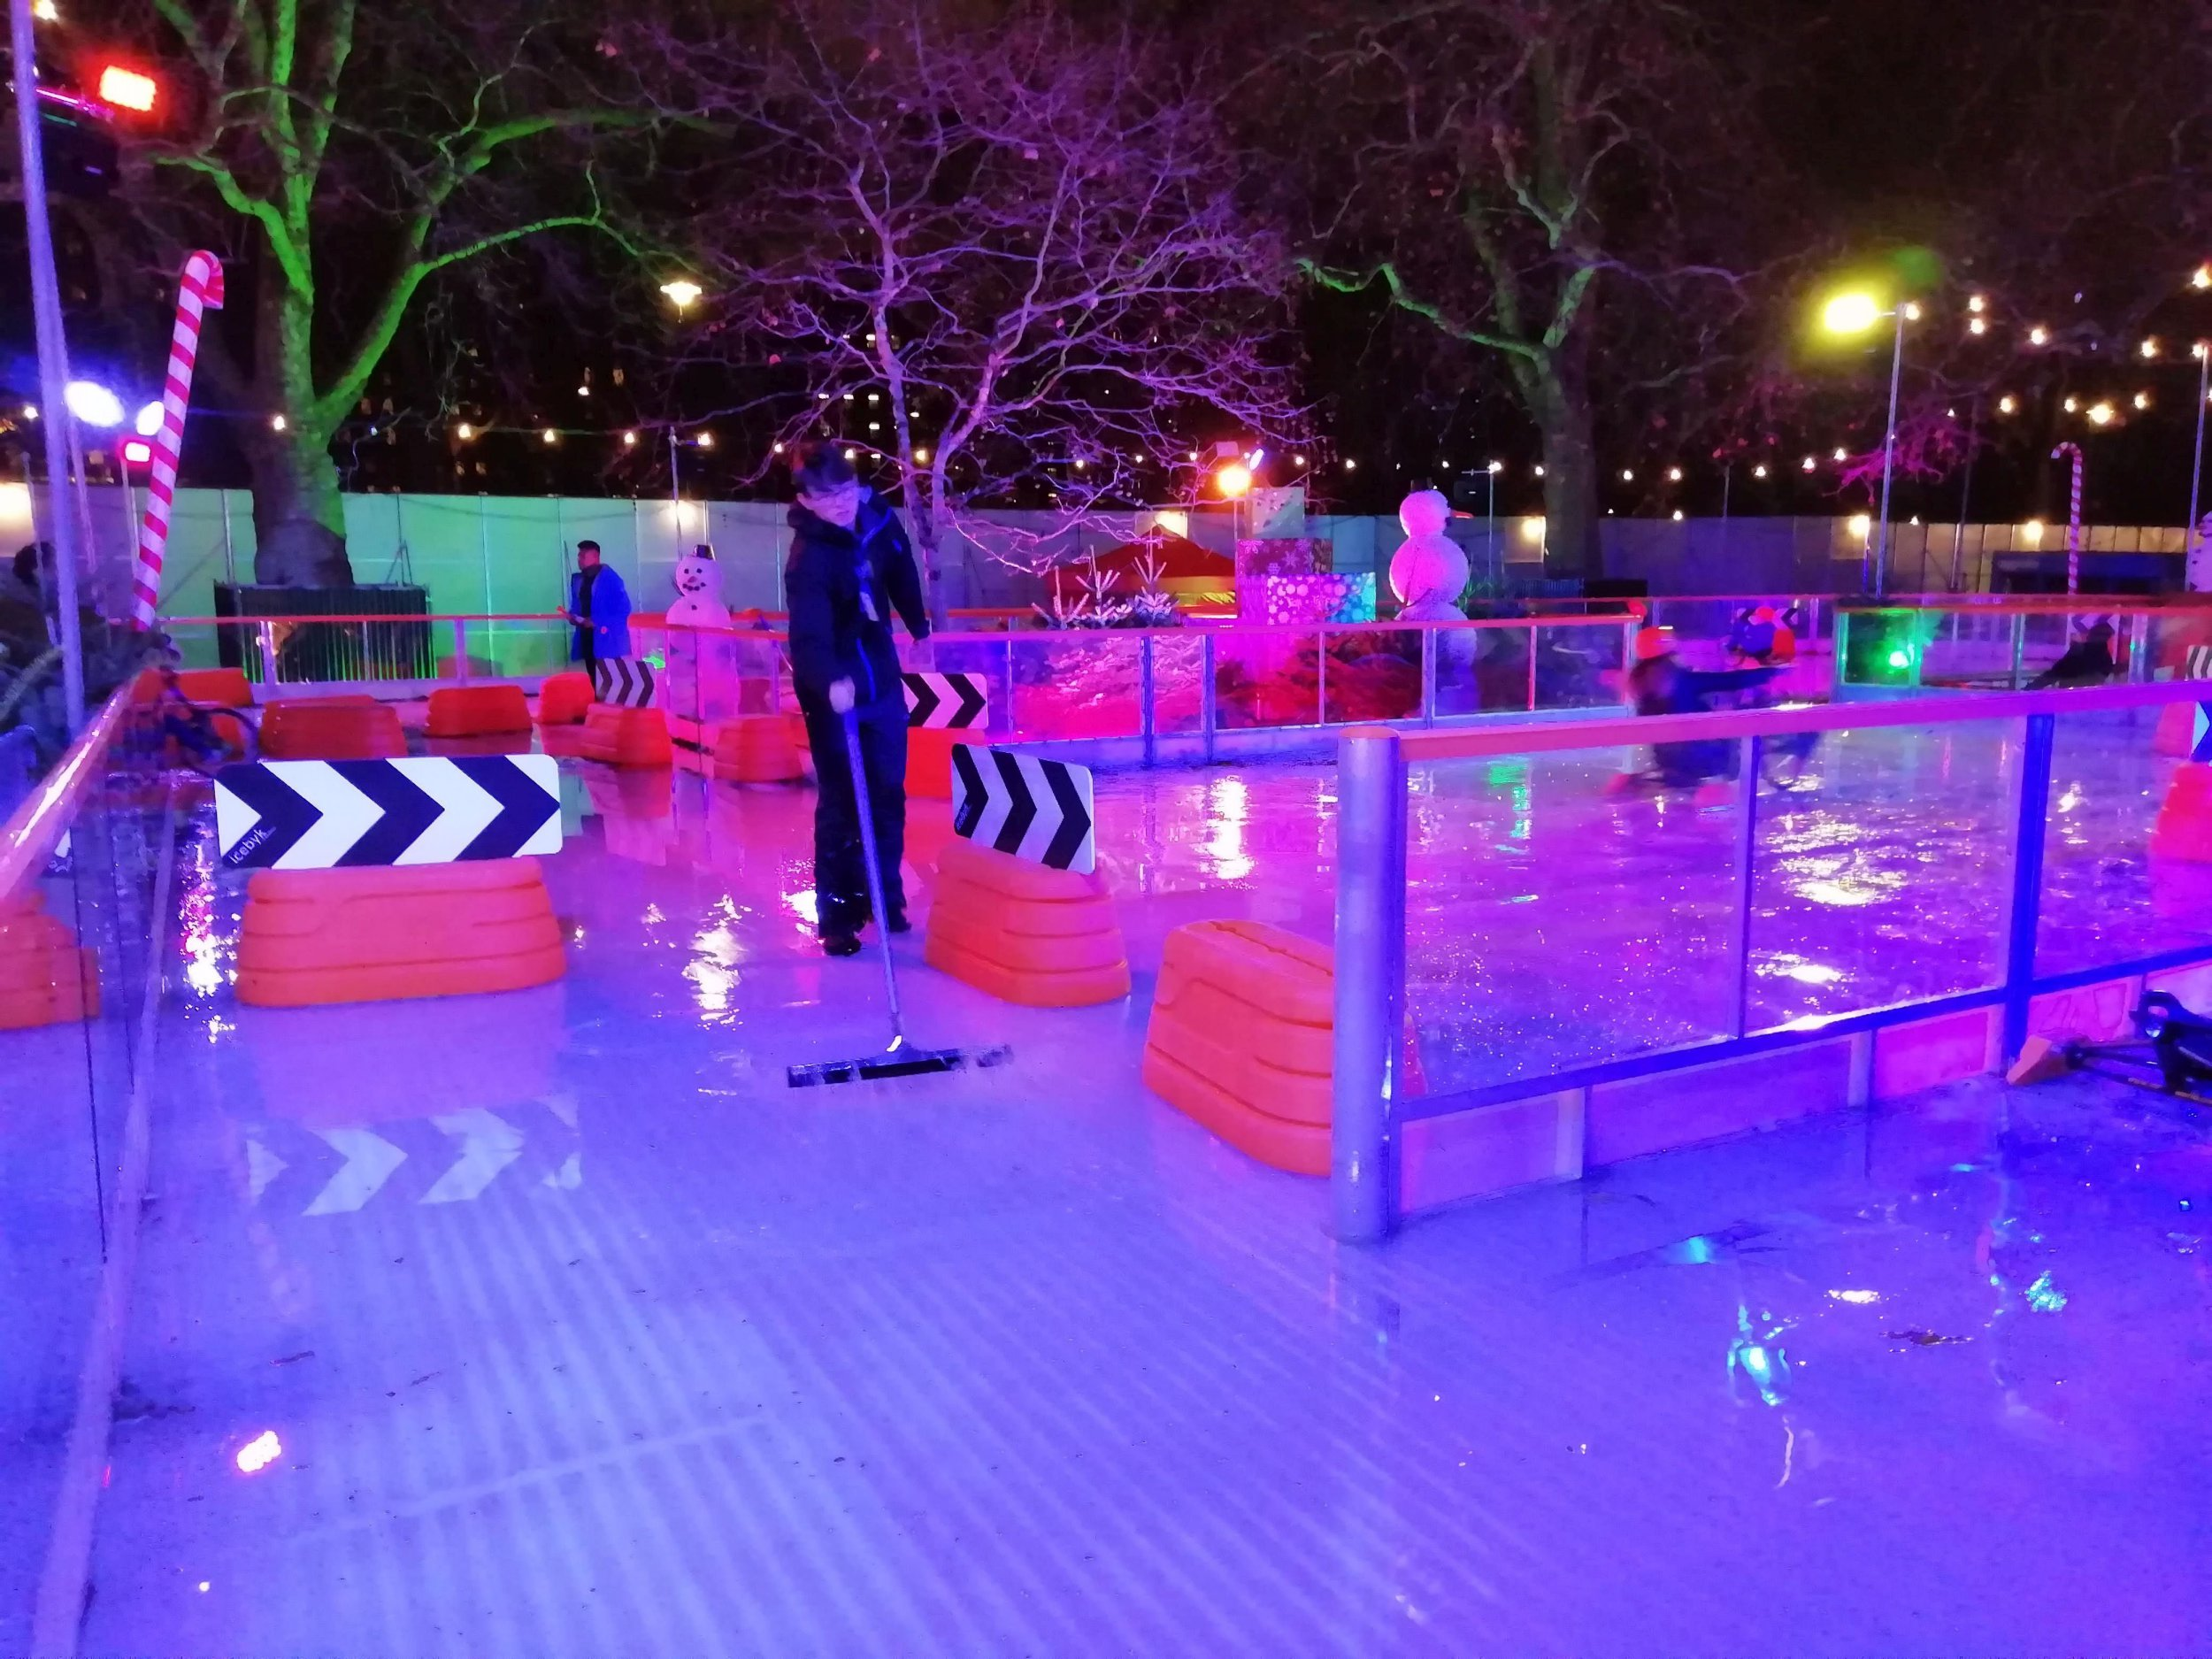 See my Newslink/email copy / ice rink melt hyde park 1,2: A smaller ice rink at Winter Wonderland in Hyde Park, London, melted and had inch-deep puddles soaking customers, with workers left with trousers wet to thigh level from brushing off water. December temperatures nudged the warmest for 177 years ? but today (Tue) sees eight inches? snow and the -7C (20F) coldest temperature since last winter. Copyright credit: Alistair Grant Freelance / 07886 000669 / ag@agrant.net